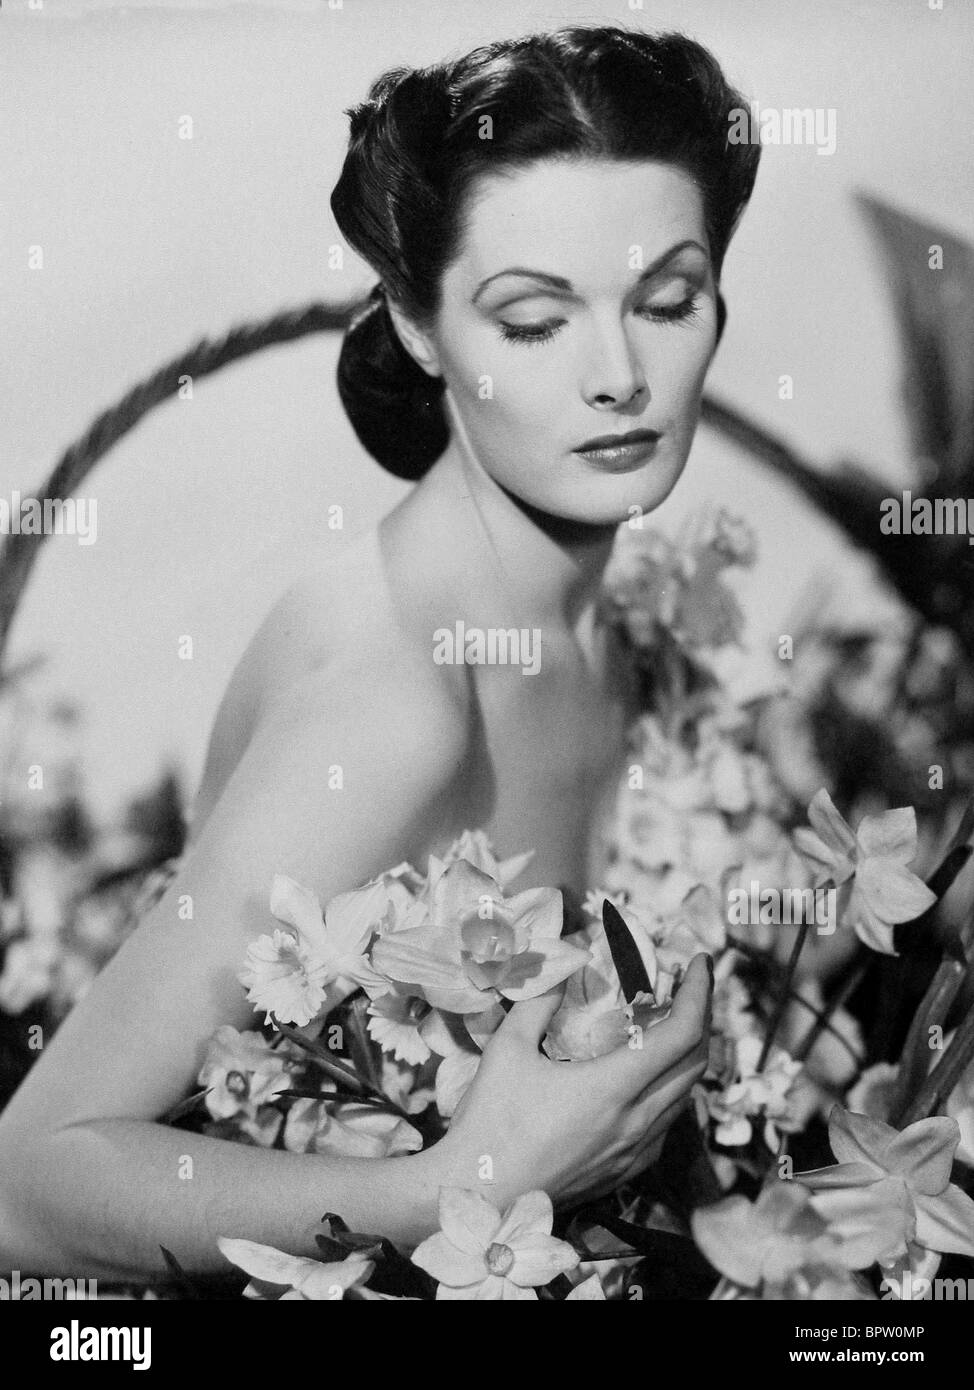 UNKNOWN ACTRESS ACTRESS (1940) - Stock Image